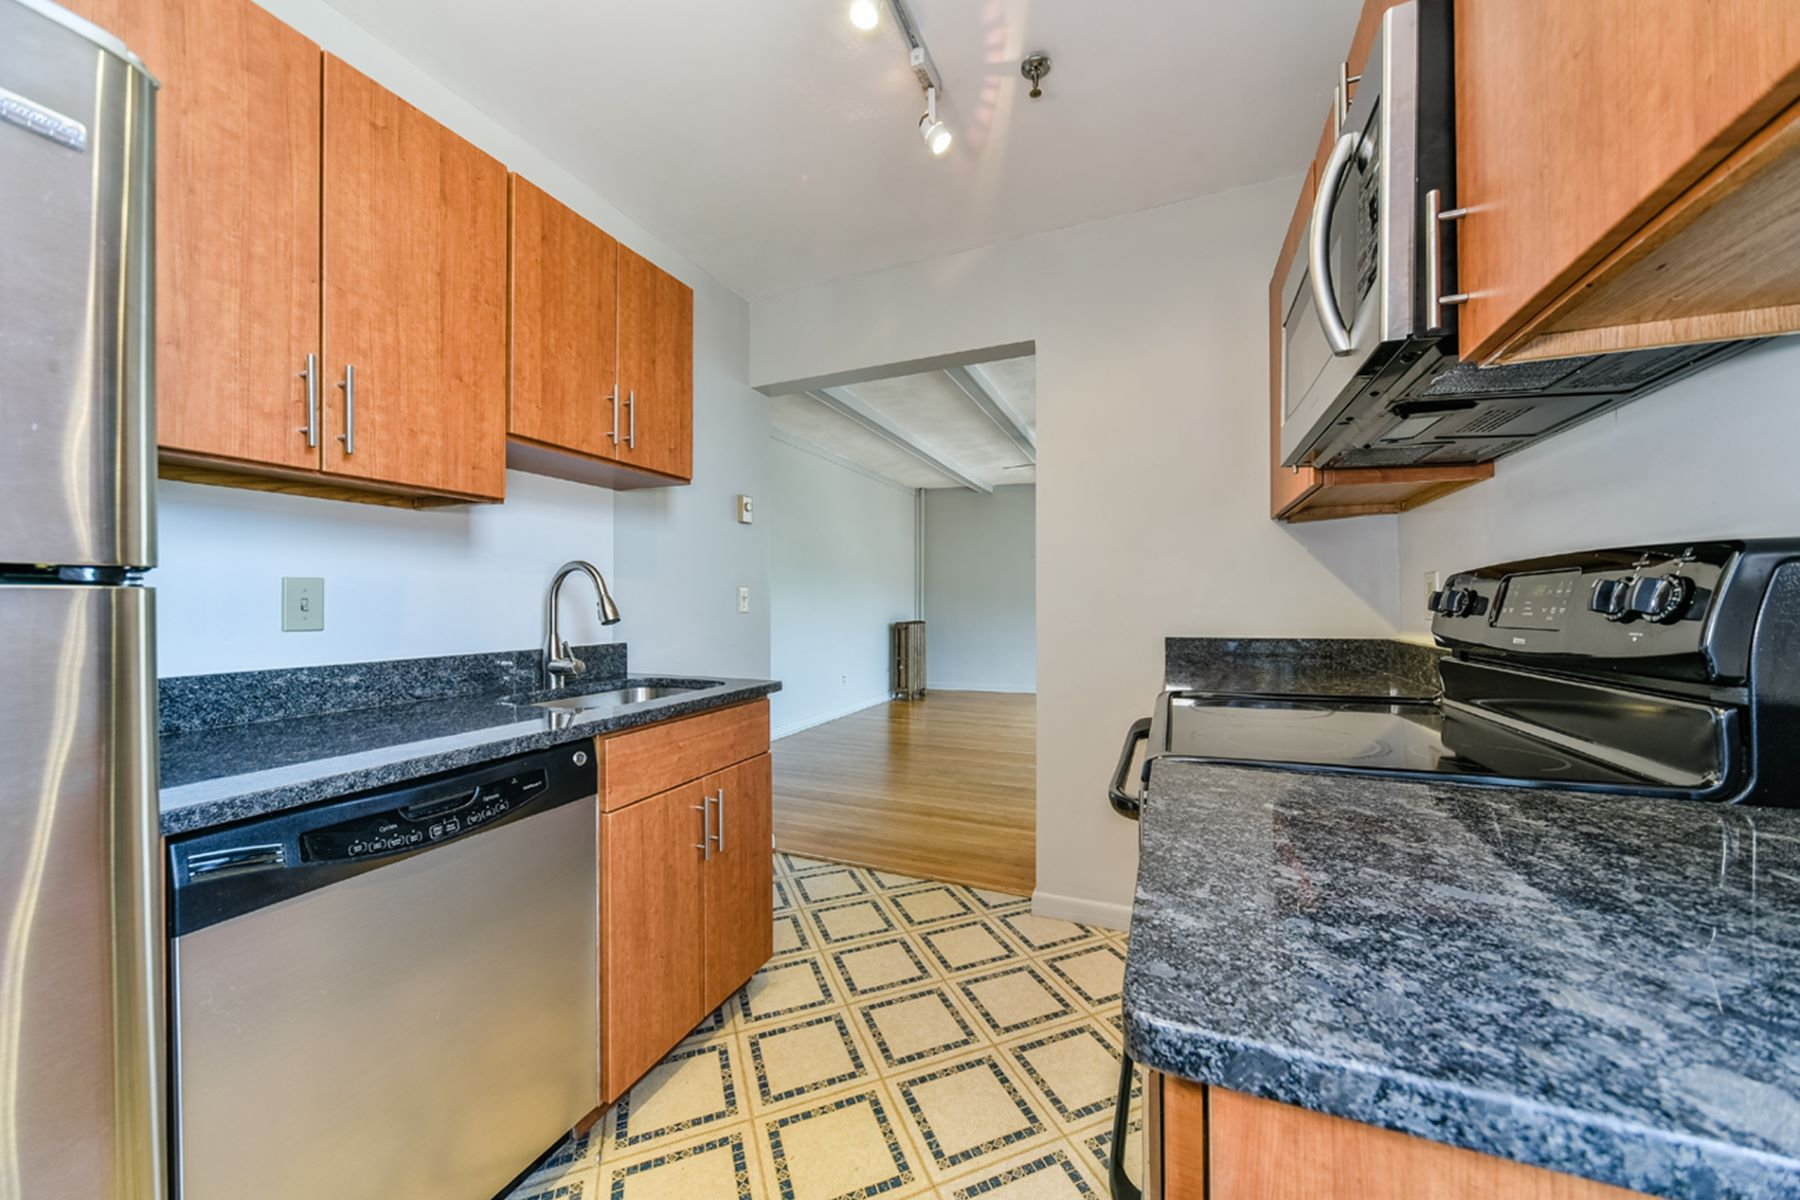 Additional photo for property listing at 1480 Commonwealth Ave 9, Boston 1480 Commonwealth Ave 9 Boston, Massachusetts 02135 United States